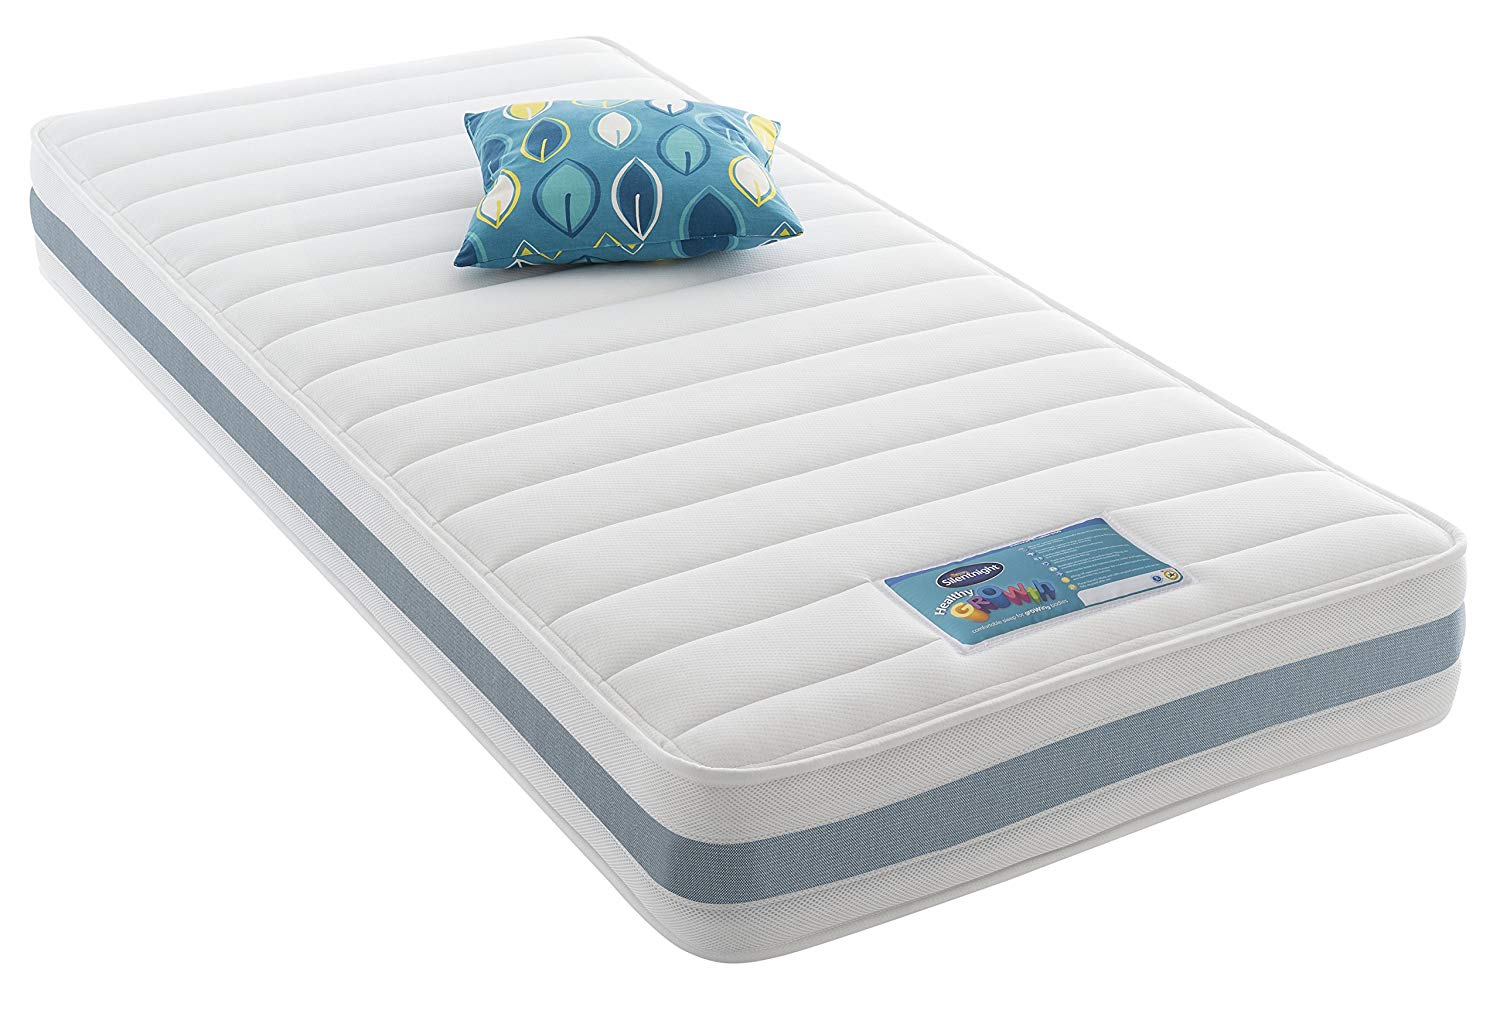 Silentnight Healthy Growth Junior Extra Comfort Kids Mattress - Single, Blue